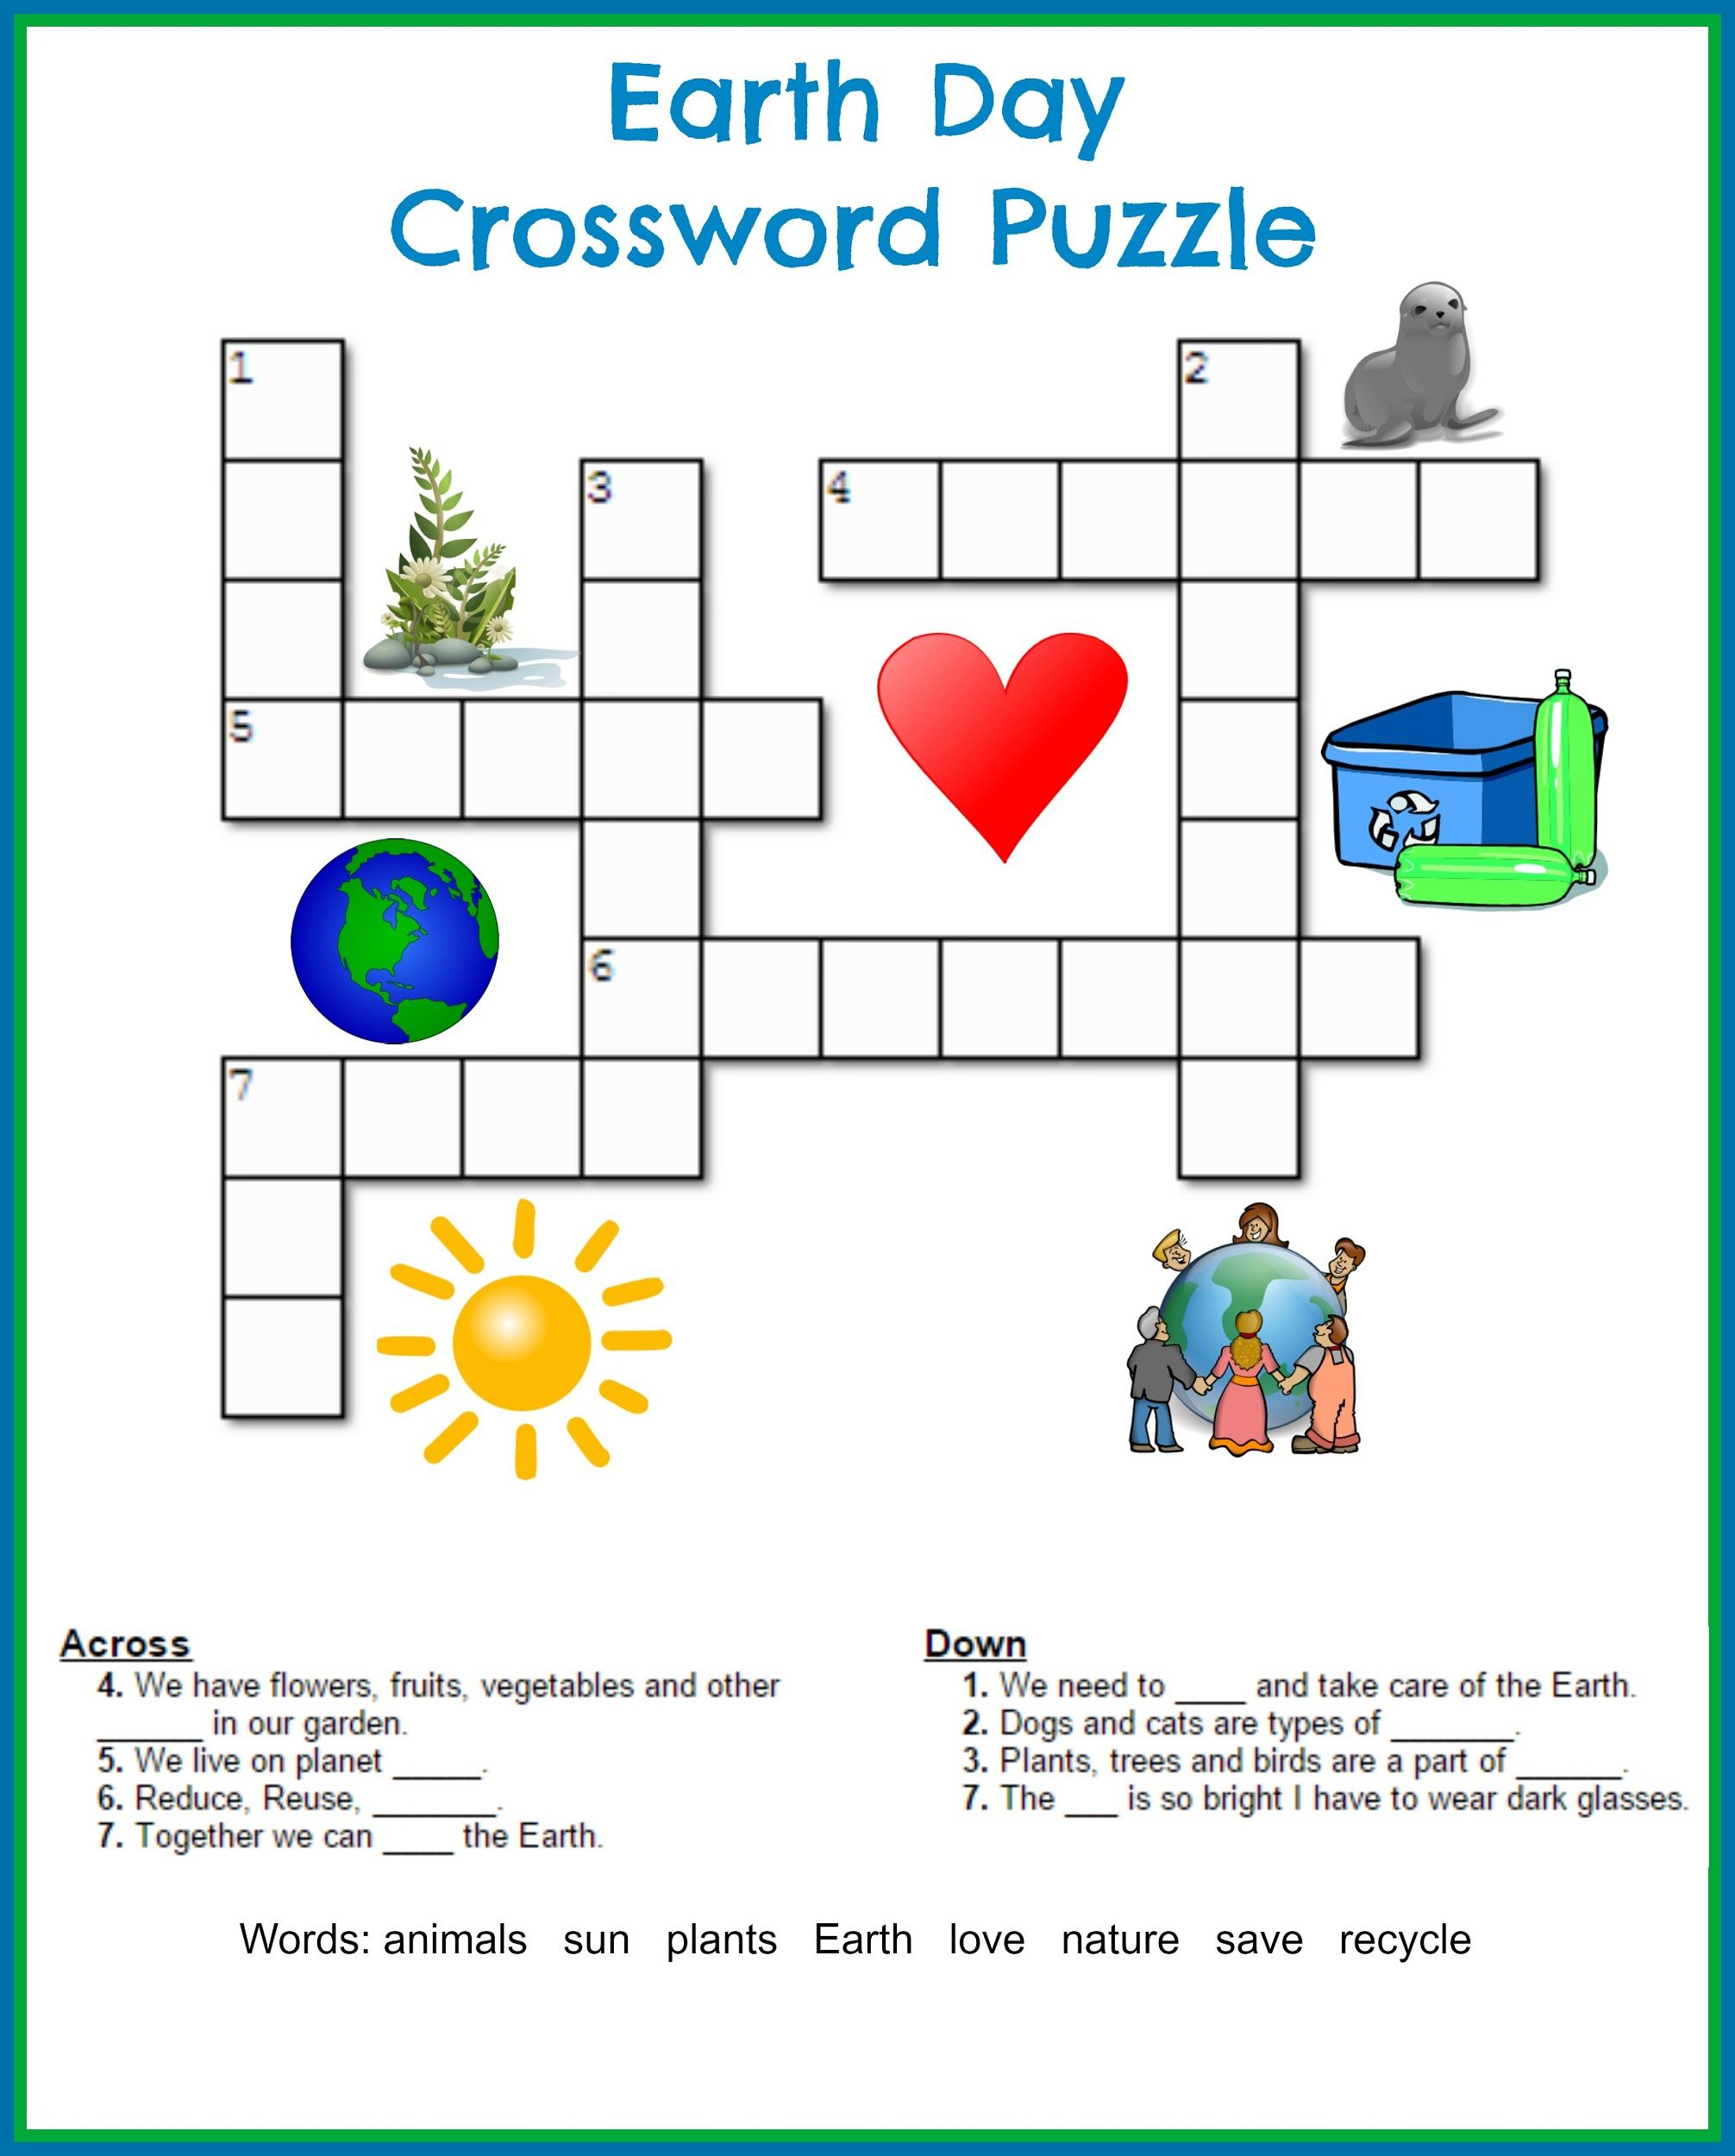 Printable Crossword Puzzles Kids | Crossword Puzzles On Earth - Printable Word Puzzles For 5 Year Olds